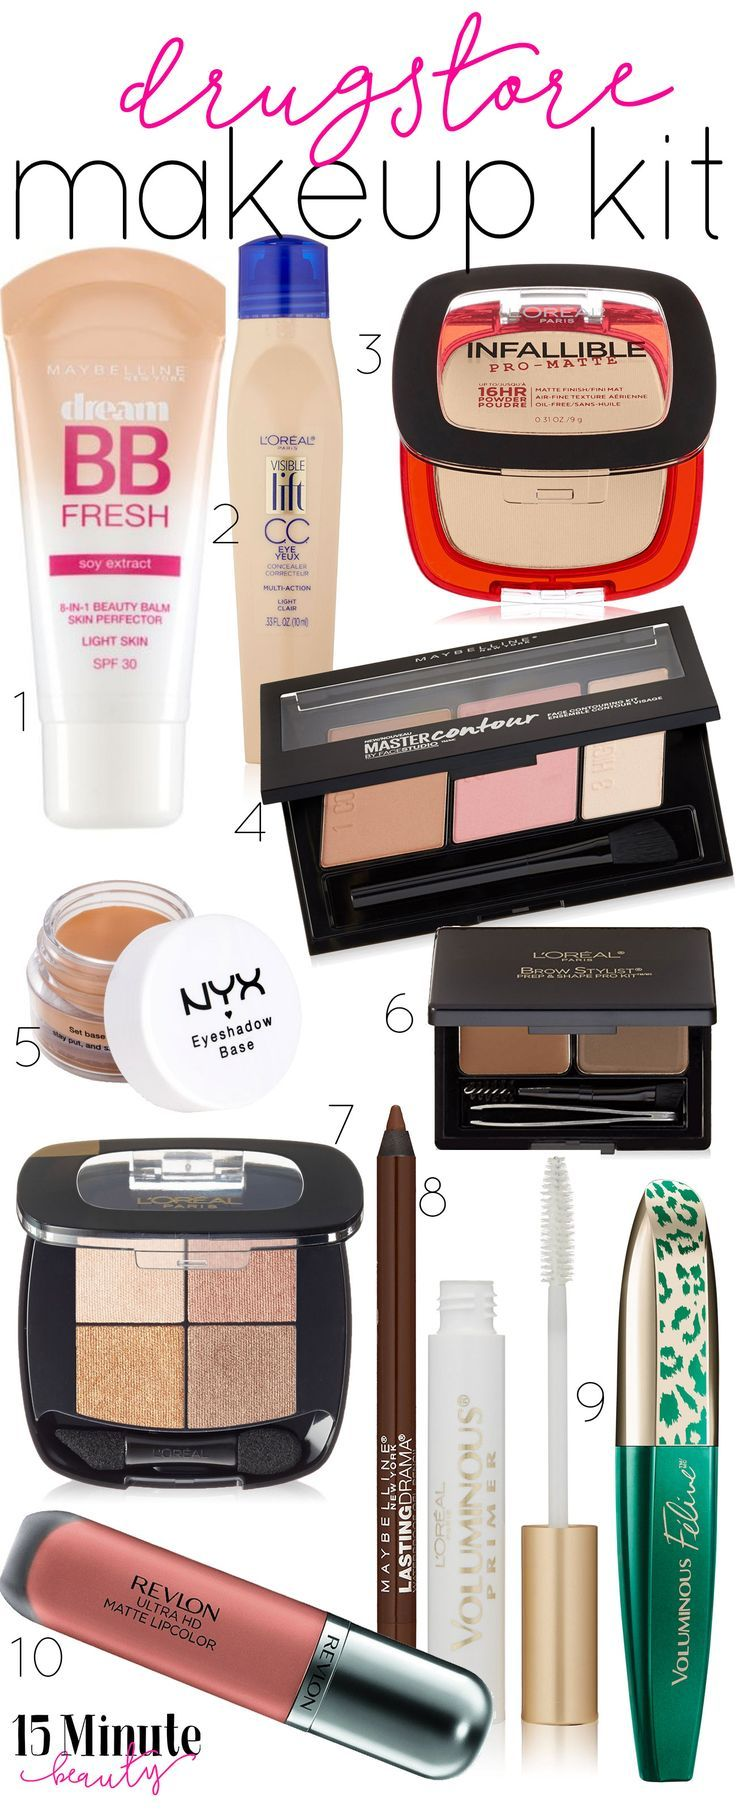 The Drugstore Makeup Kit: My Picks